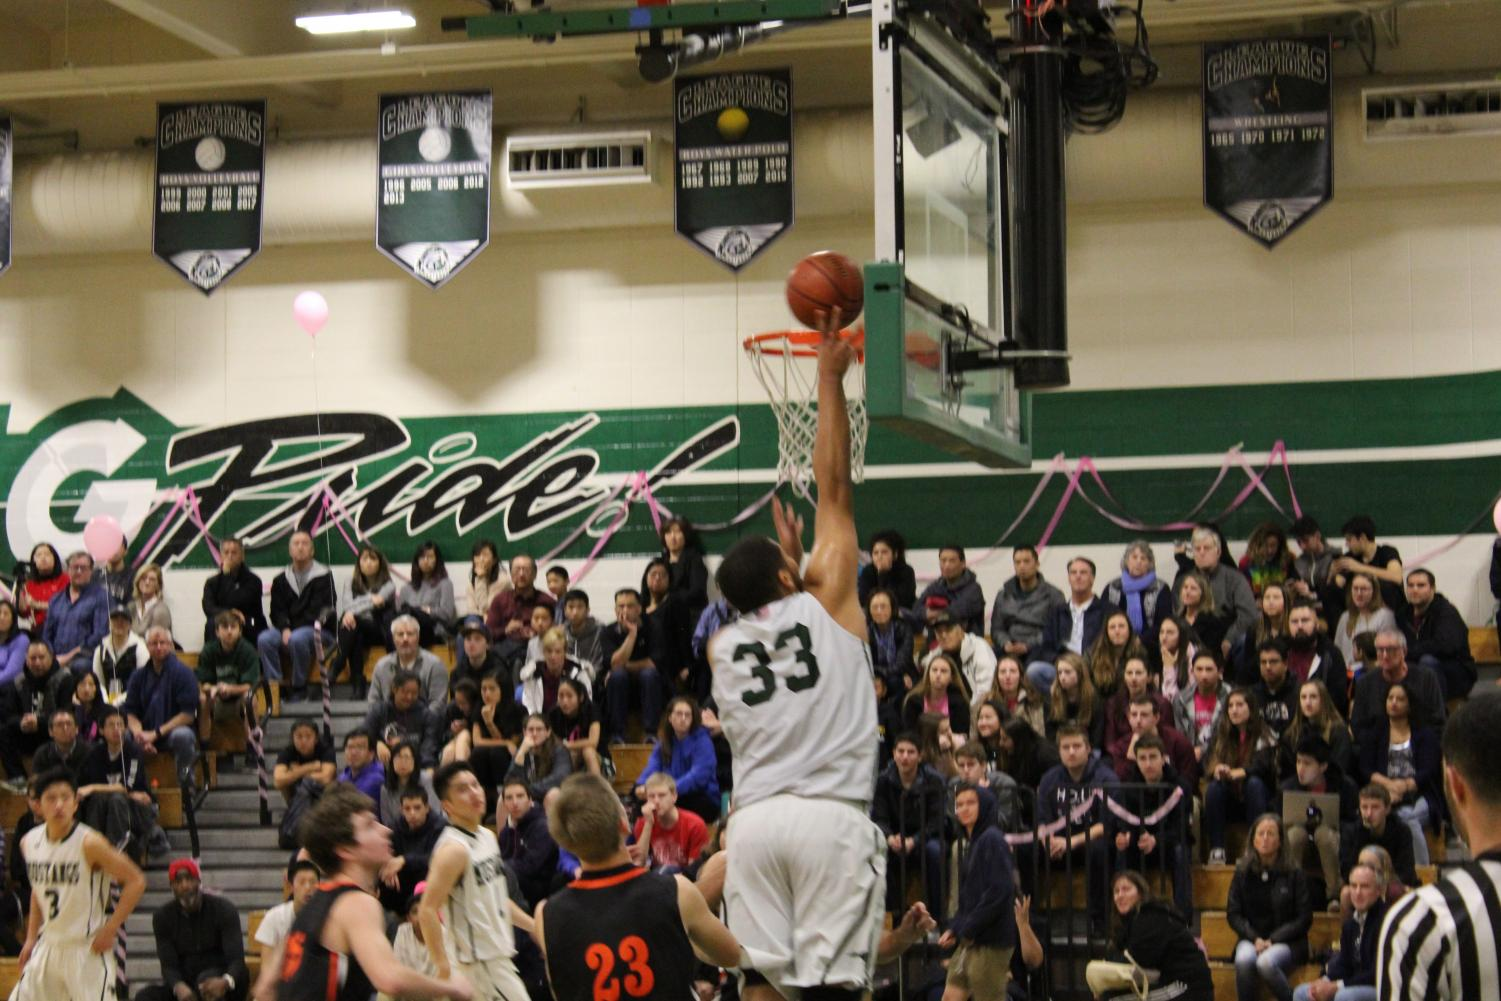 The boys varsity basketball team is fighting their way to the top